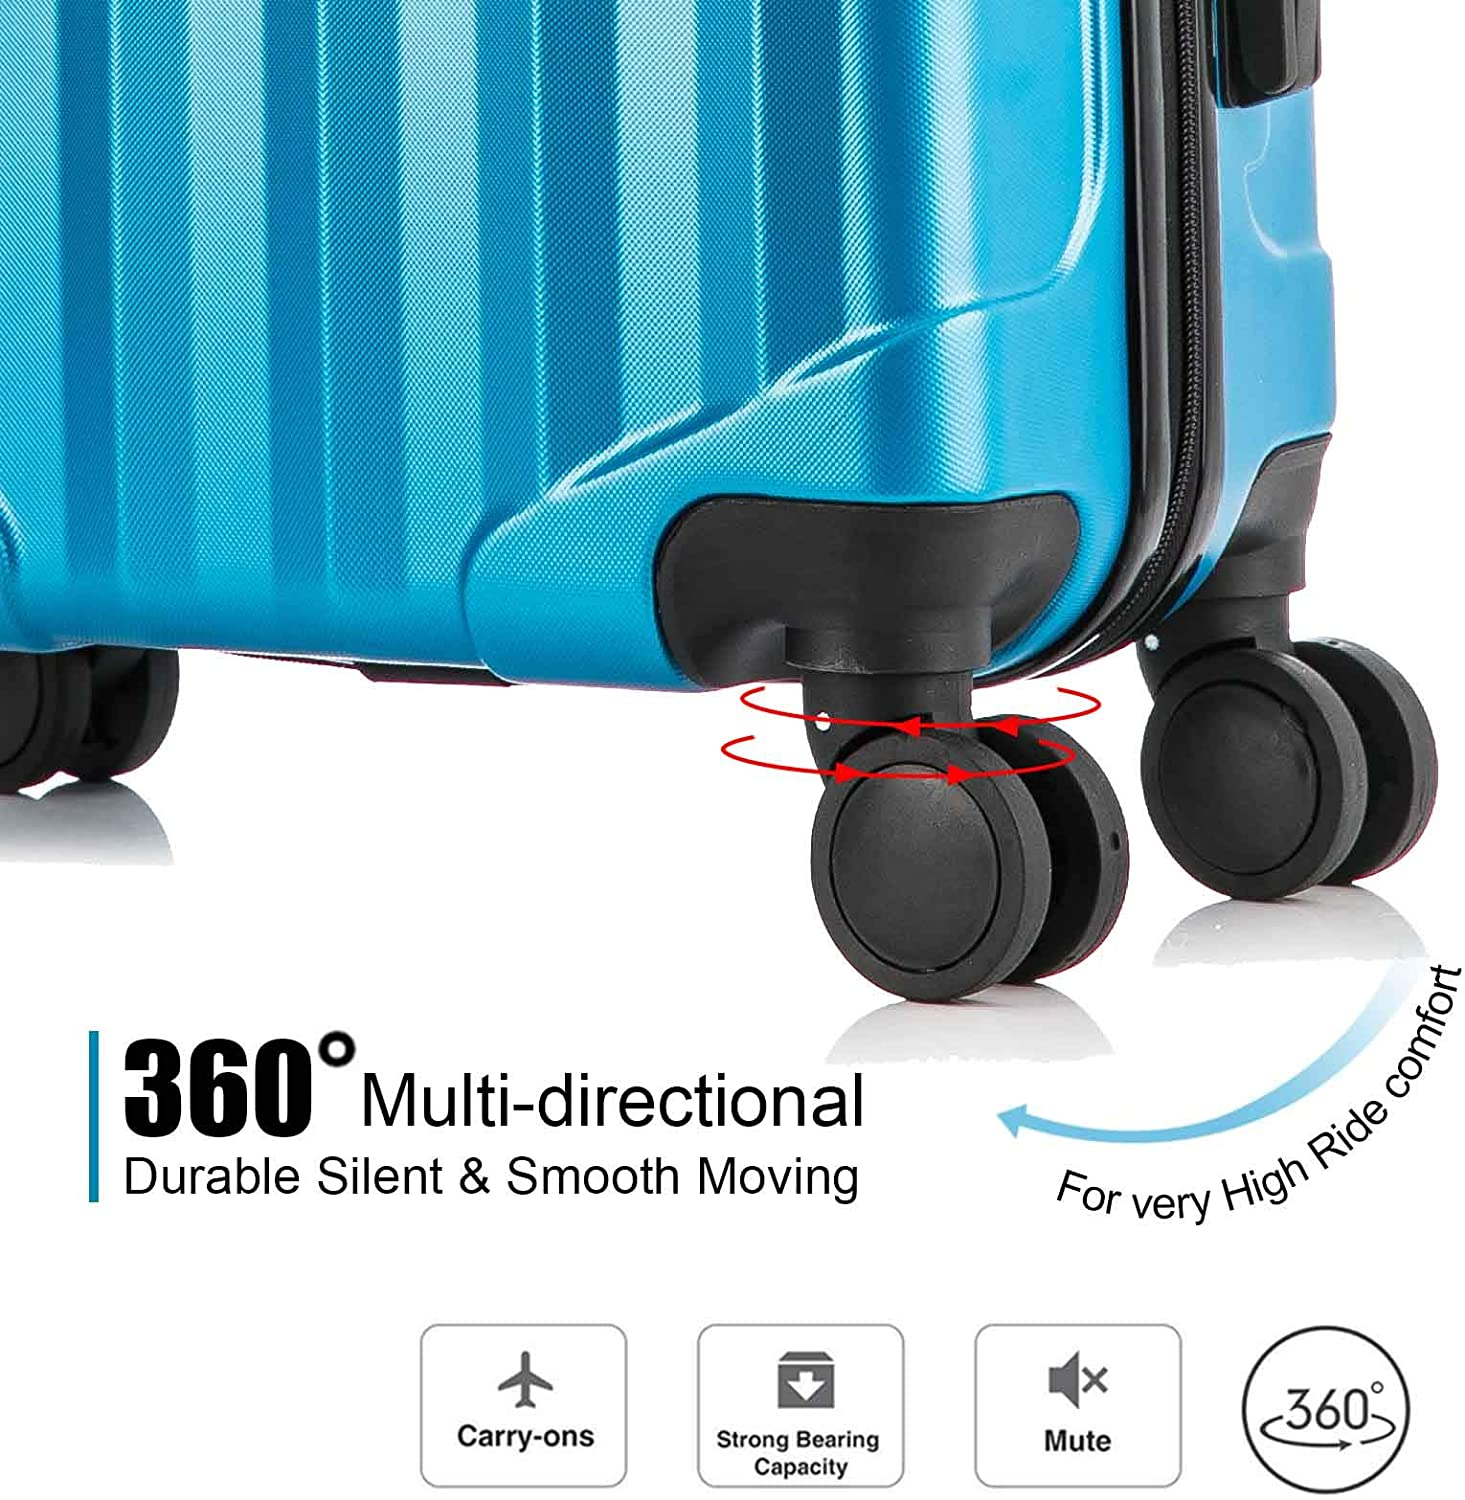 Vertical Stripes 4PC Luggage Sets 16 20 24 28Inch ABS Hardshell Luggage Set Lightweight Hard Shell Travel Suitcases w//Spinner Wheels Free Suitcase Cover - Champagne